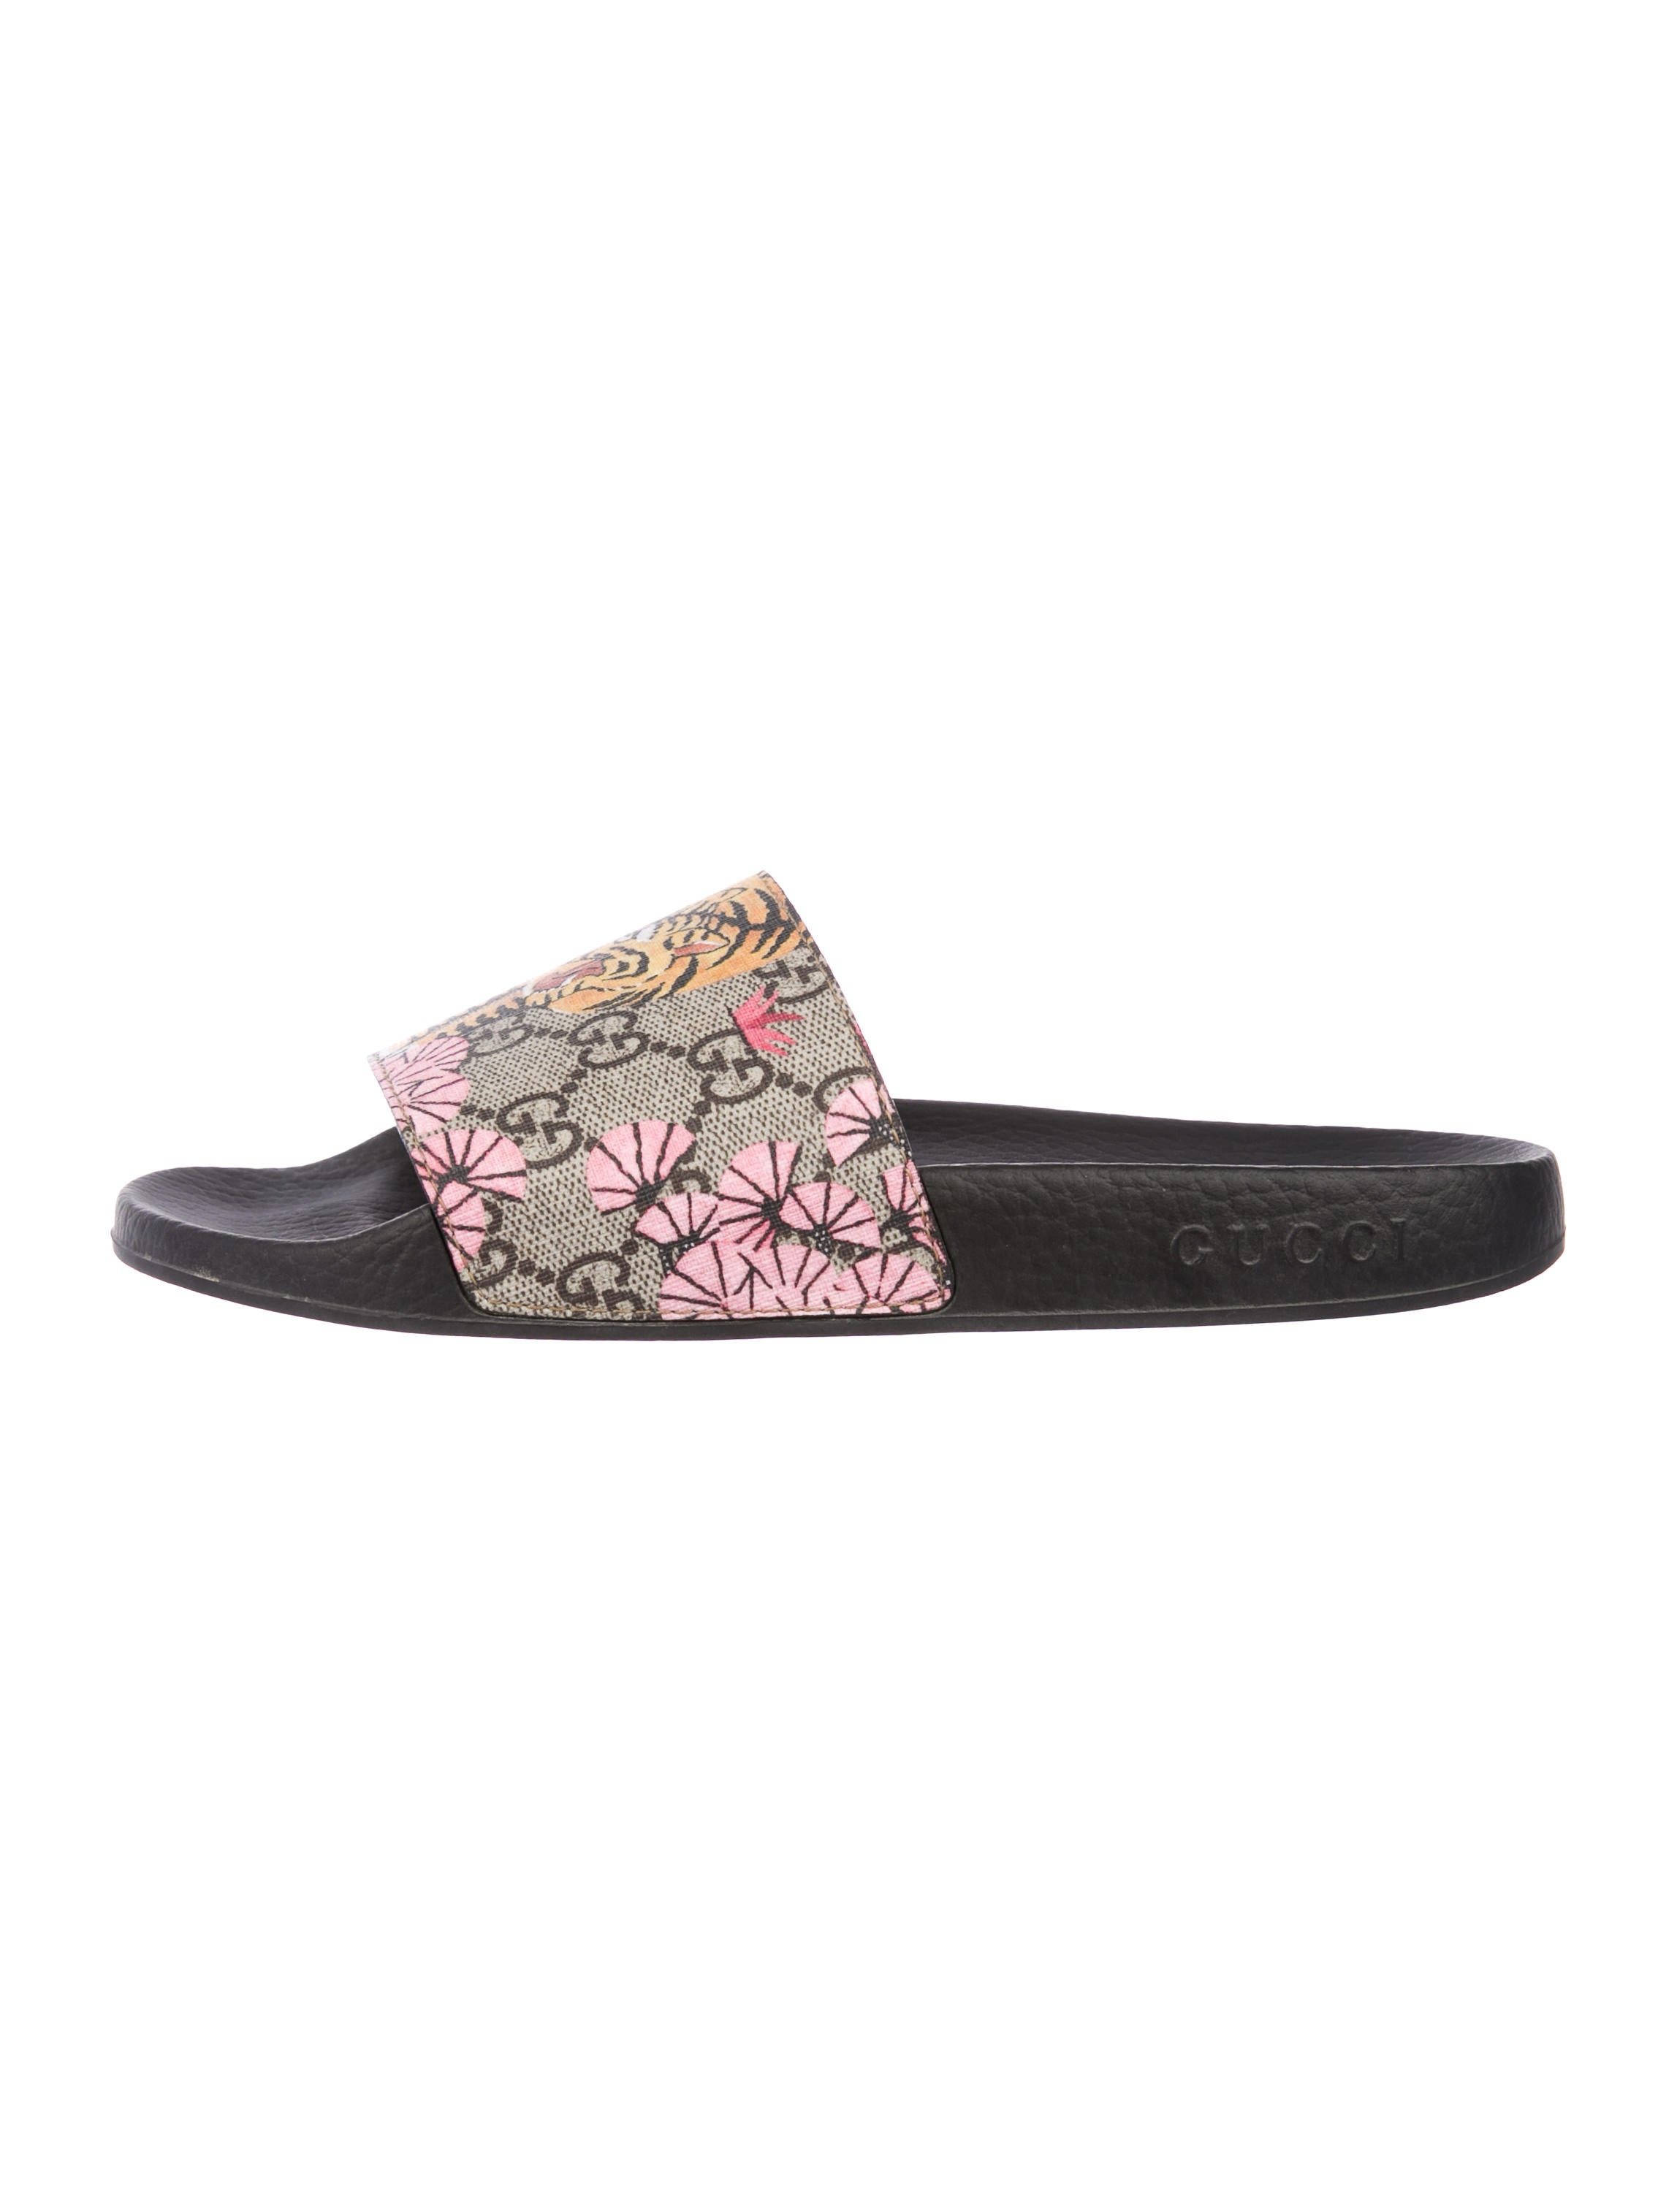 13ee23790 Gucci Women | The RealReal